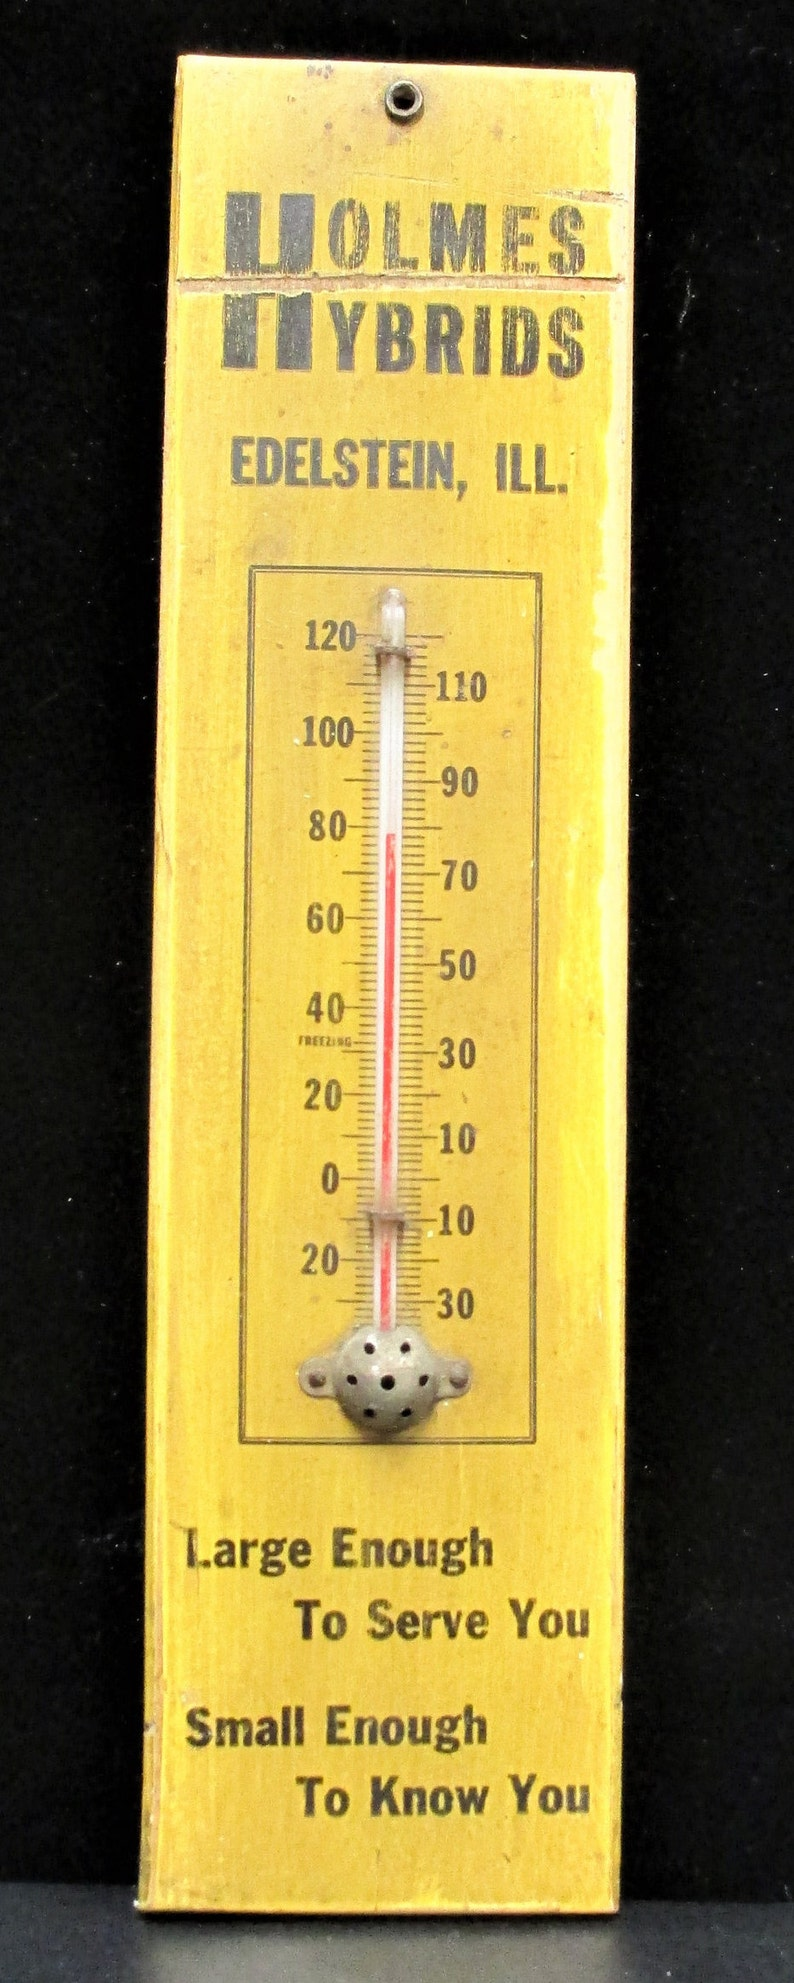 11.5 tall Vintage Holmes Hybrids Thermometer on Wood Illinois Seed Corn Advertising Farm Collectible Memorabilia